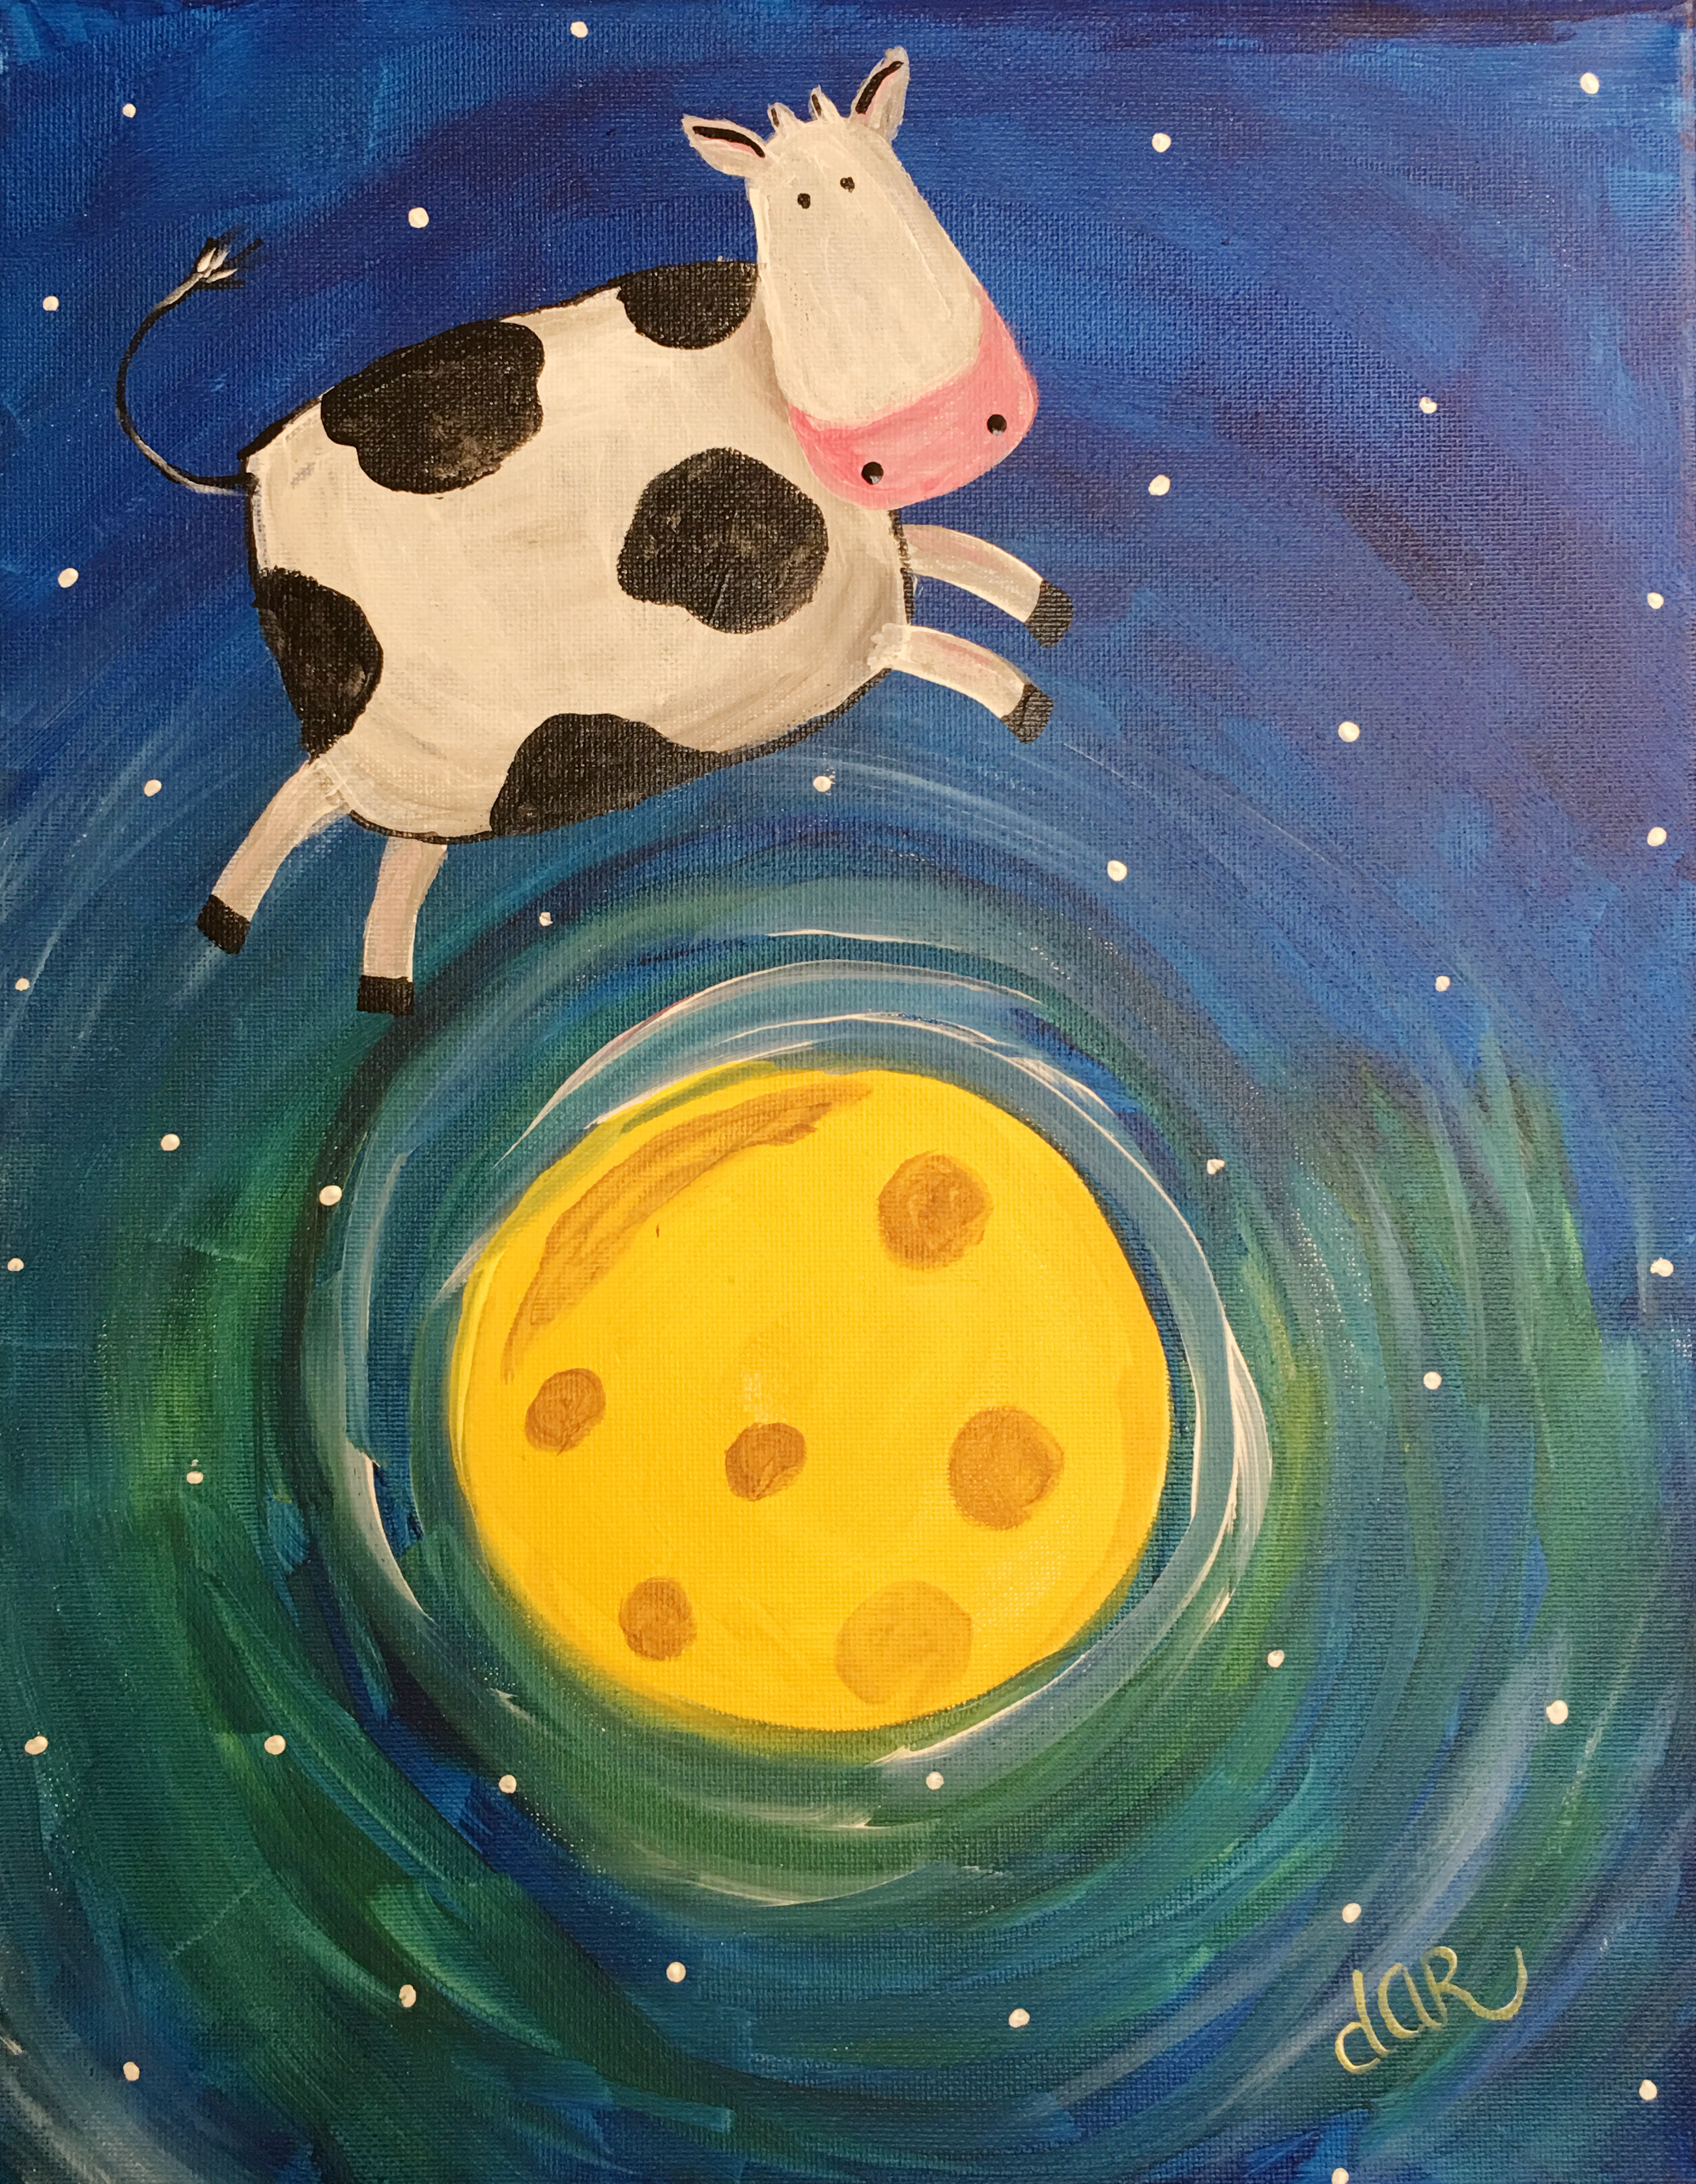 COW JUMPED OVER THE MOON